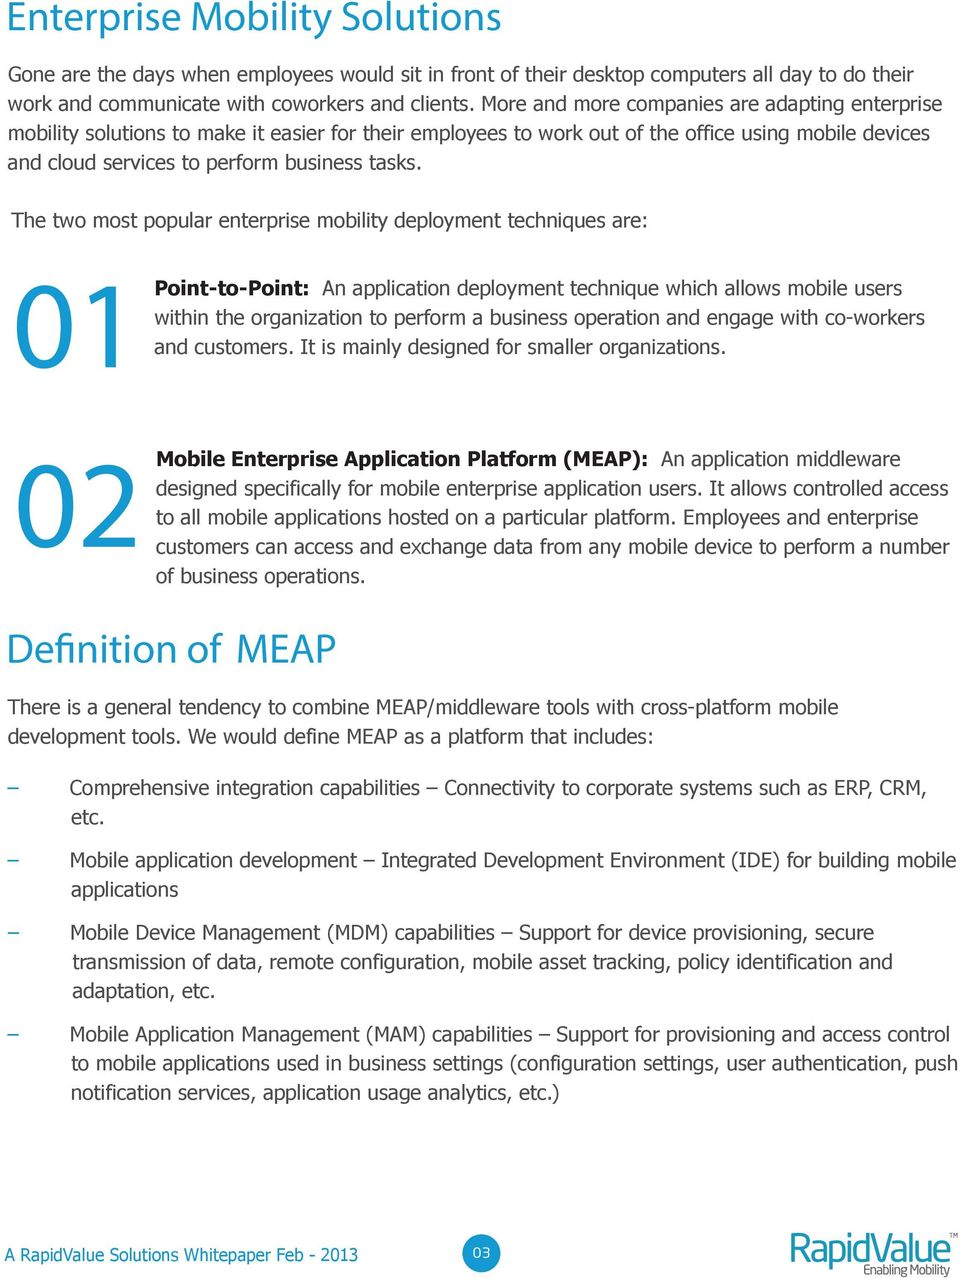 The two most popular enterprise mobility deployment techniques are: 01 Point-to-Point: An application deployment technique which allows mobile users within the organization to perform a business